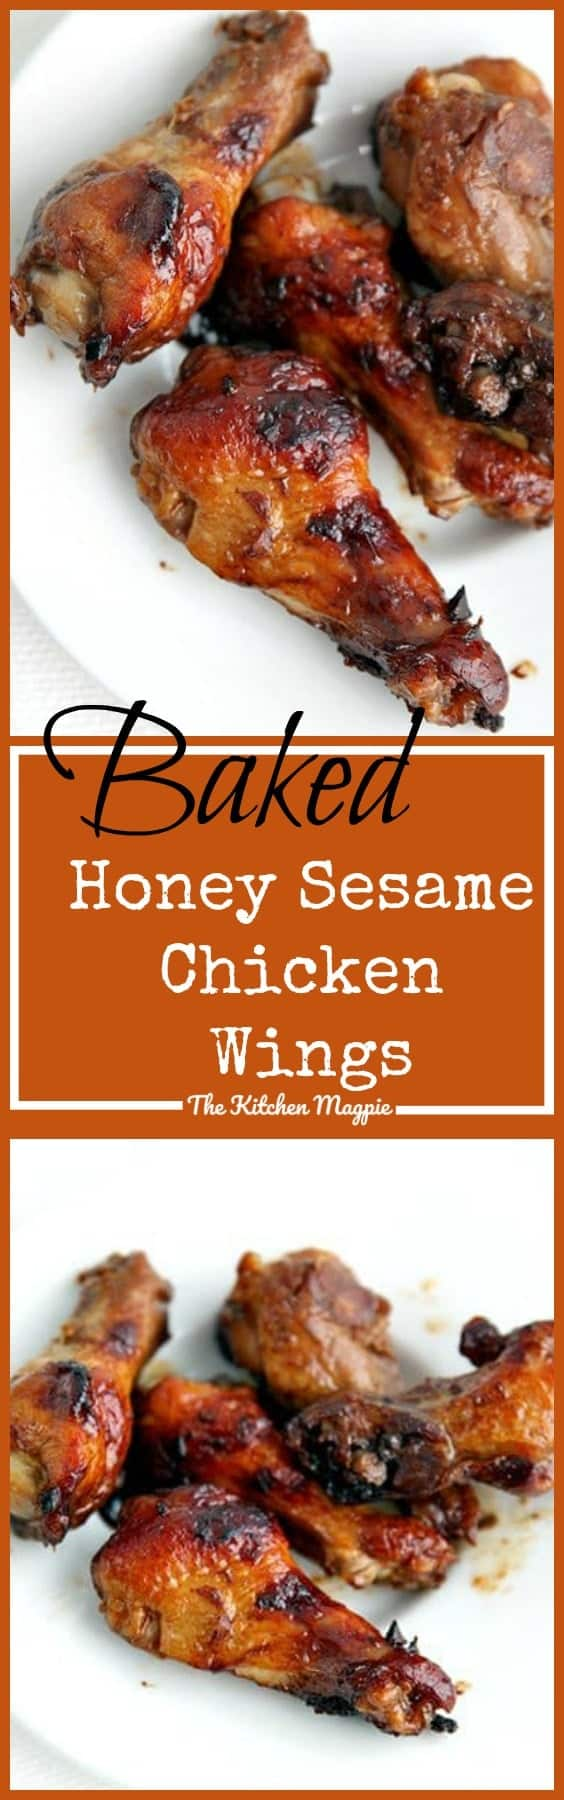 Baked Honey Sesame Chicken Wings from @kitchenmagpie